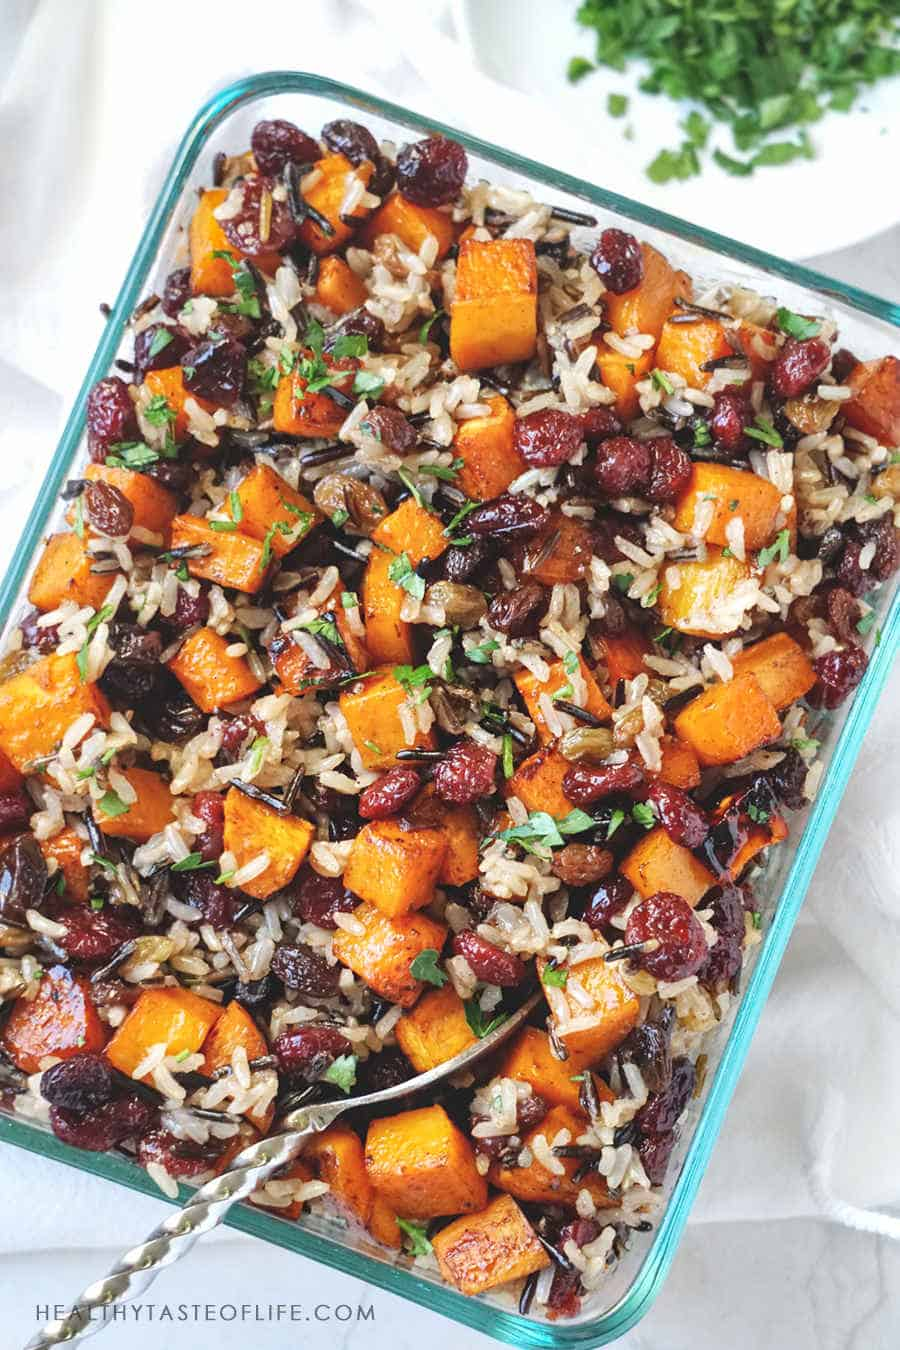 One of my favorite baked butternut squash recipes: it's easy and simple to make, perfect as a meatless dinner or side dish recipe : great for Thanksgiving or Christmas. This butternut squash casserole provides a nice alternative to plain rice side dishes. It's healthy, sweet due to roasted butternut squash (cubed and caramelized), dried fruit and a sweet balsamic sauce. #butternutsquashrecipe  #roastedbutternutsquash #vegan #healthy #recipes #baked